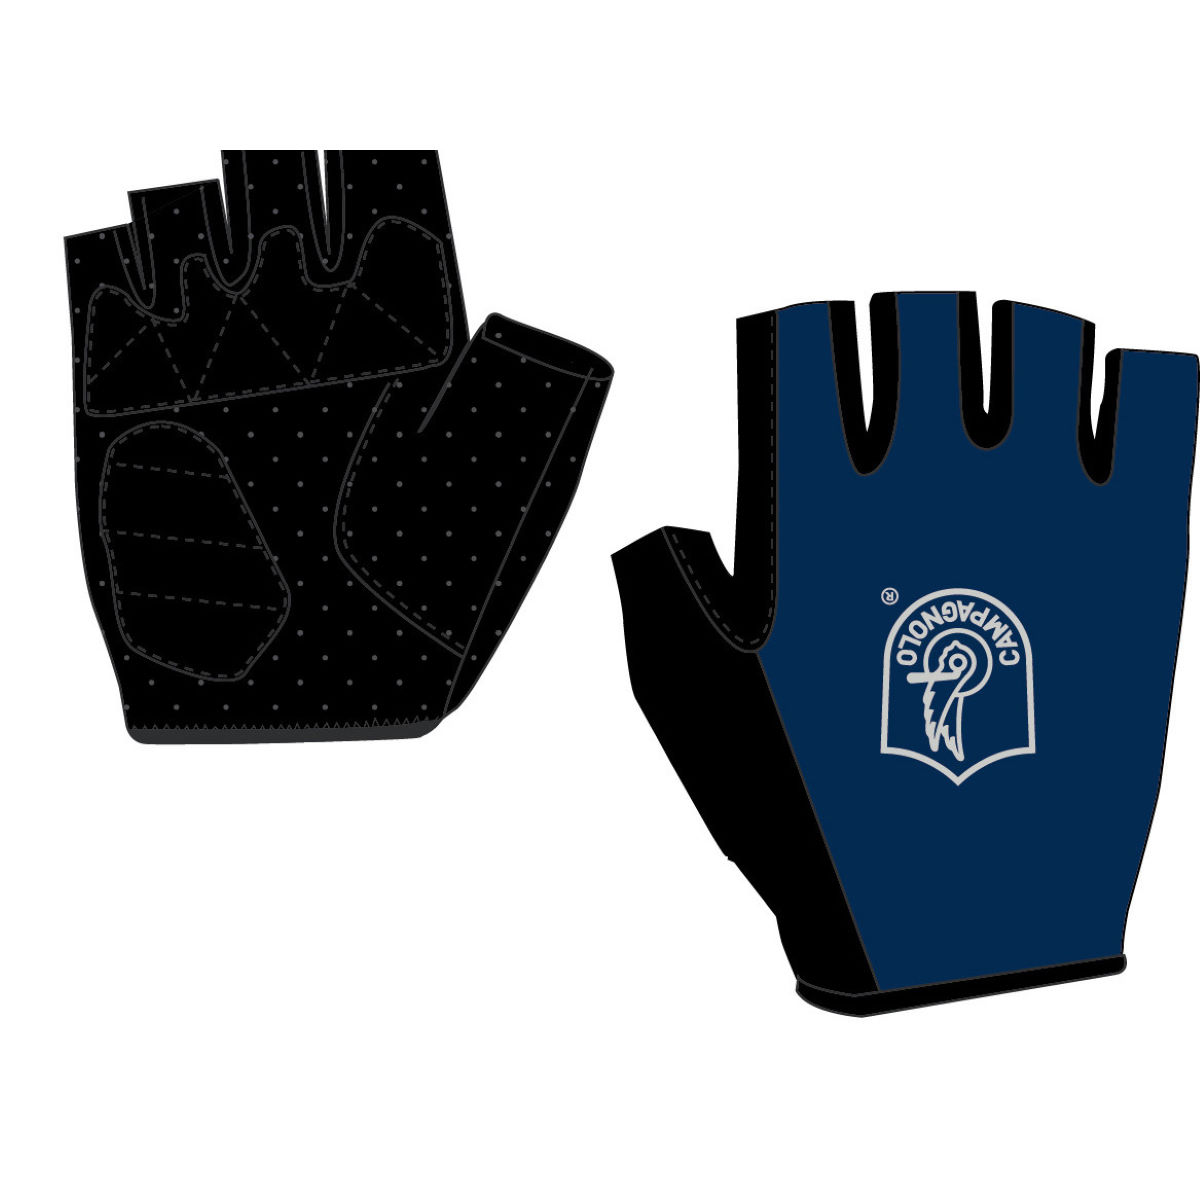 Campagnolo Glotech Gloves - L Blue | Short Finger Gloves